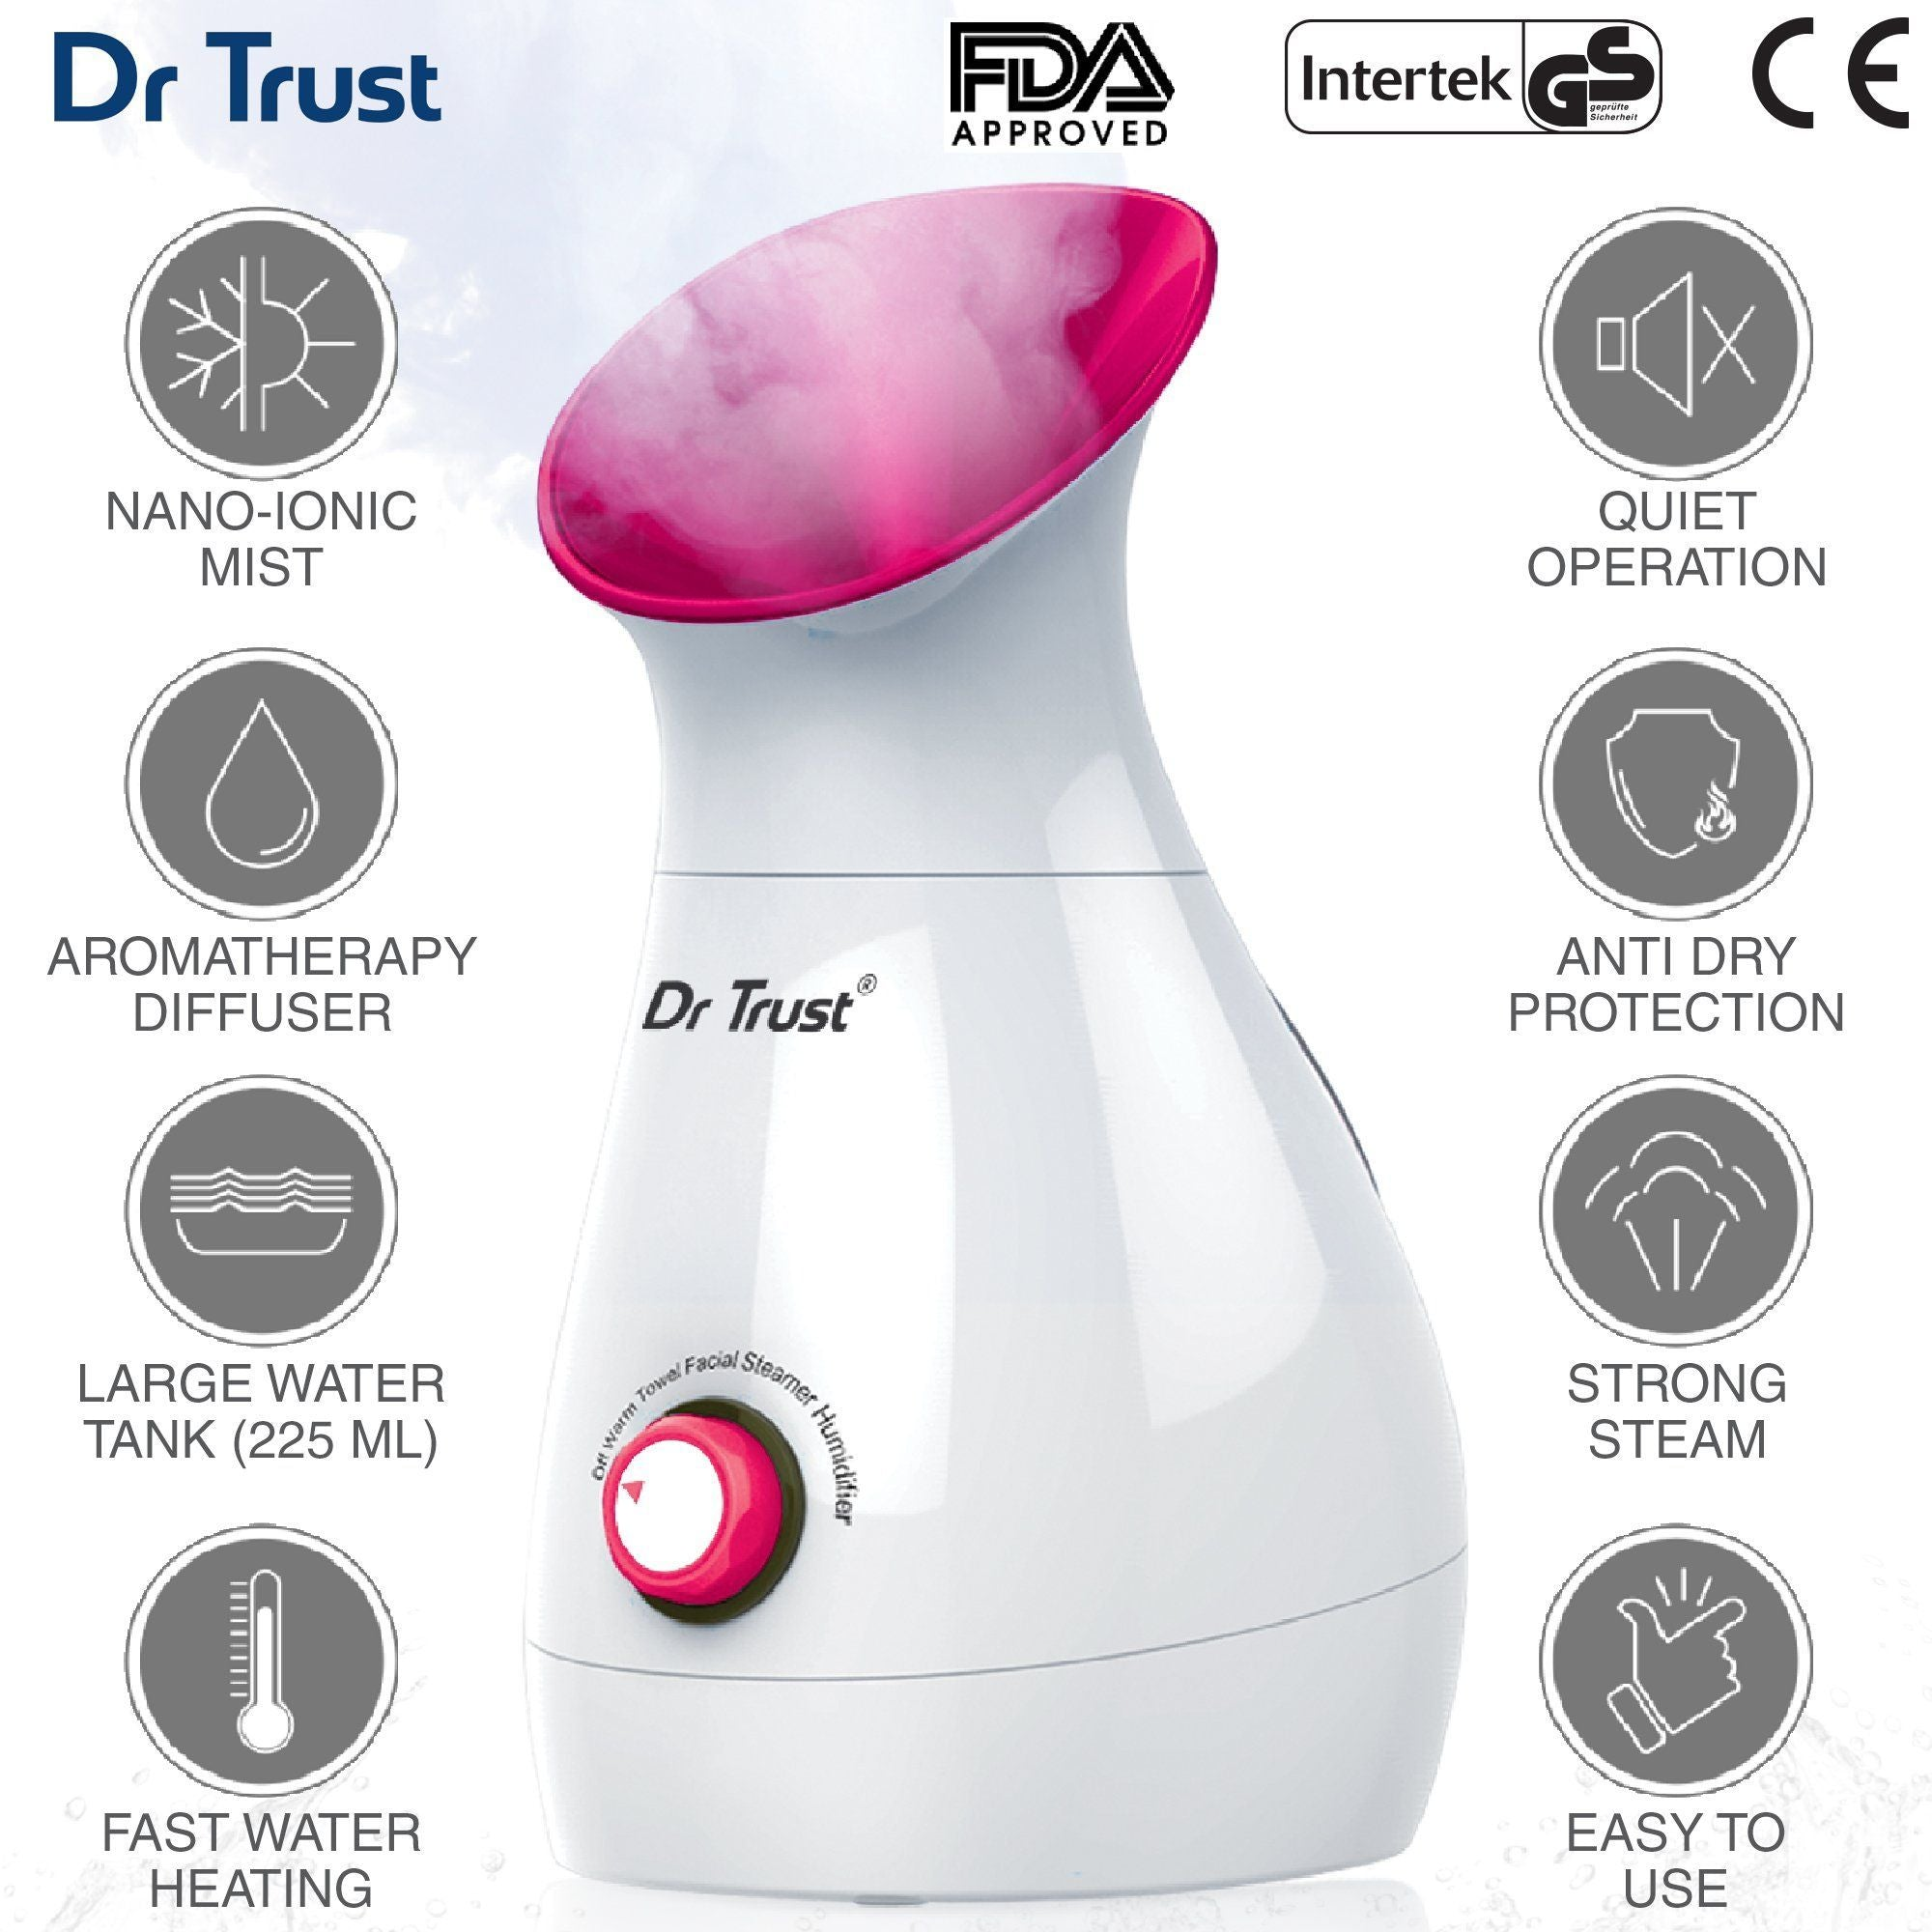 Dr Trust USA 3-in-1 Nano Ionic Facial Steamer Vaporizer (Pink) 905